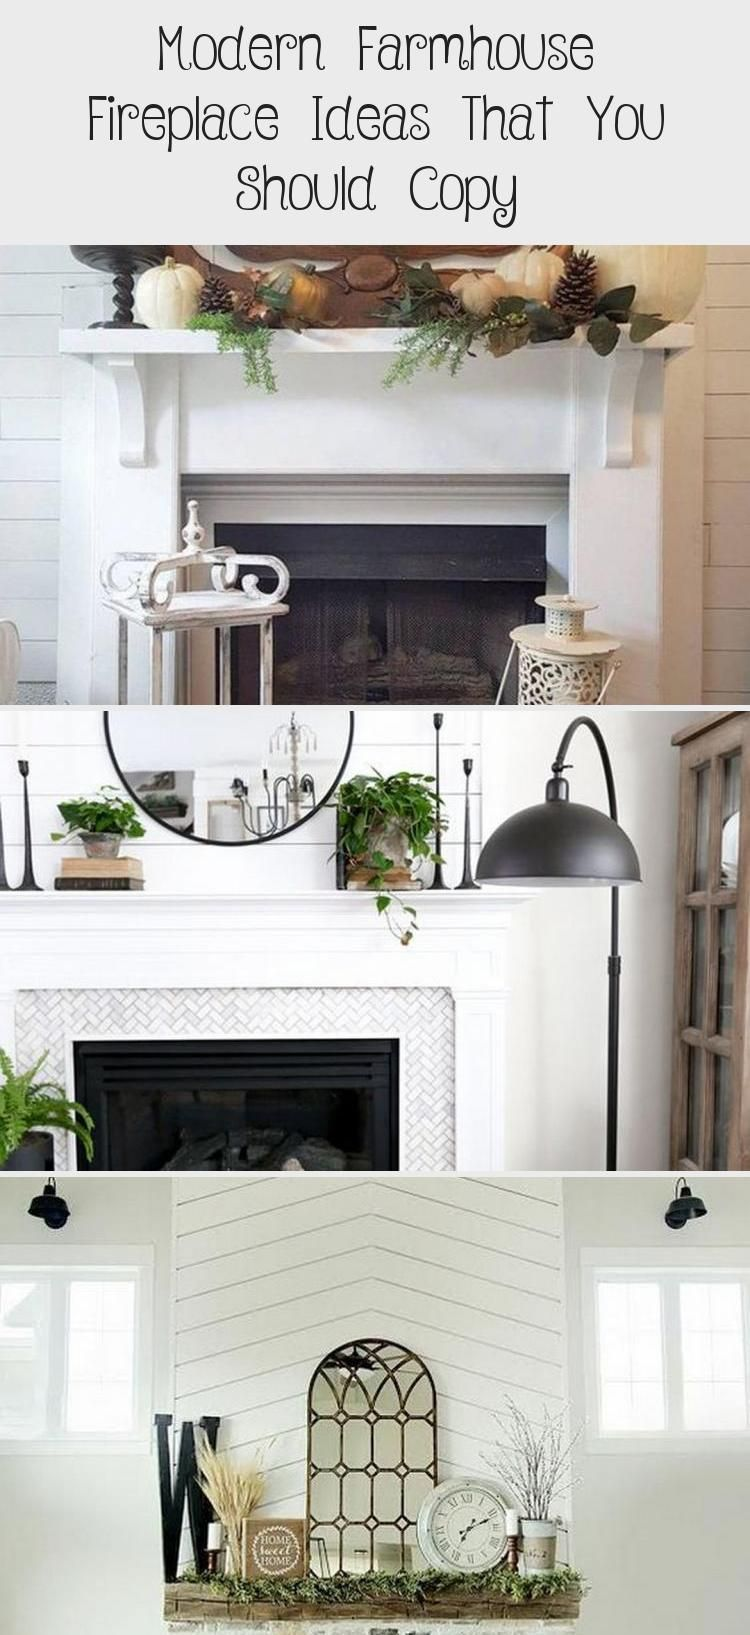 Modern Farmhouse Fireplace Ideas That You Should Copy